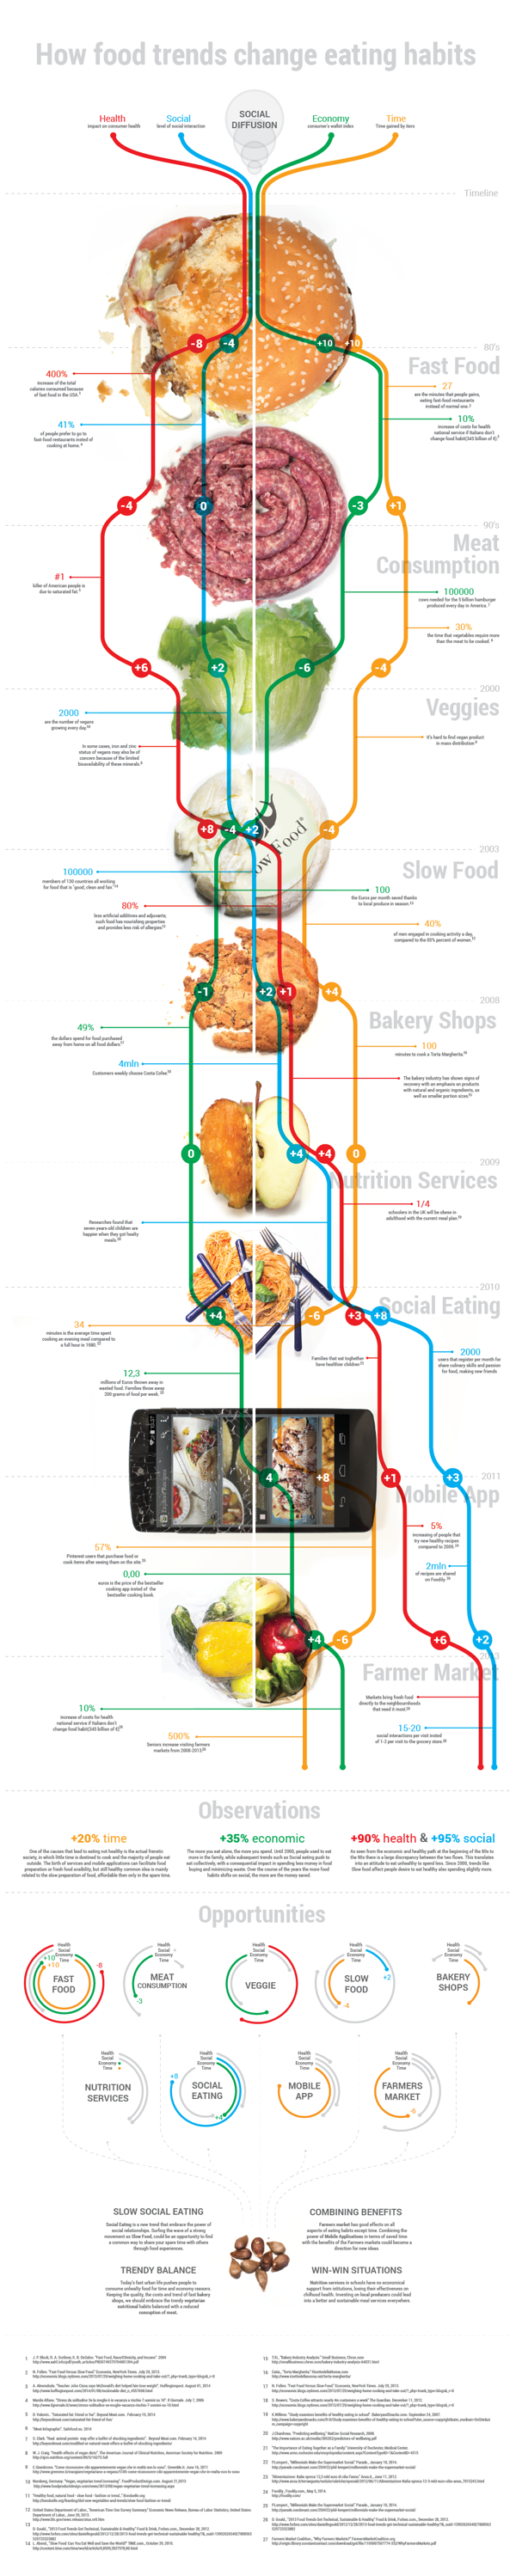 [Infographic] How Food Trends Change Eating Habits